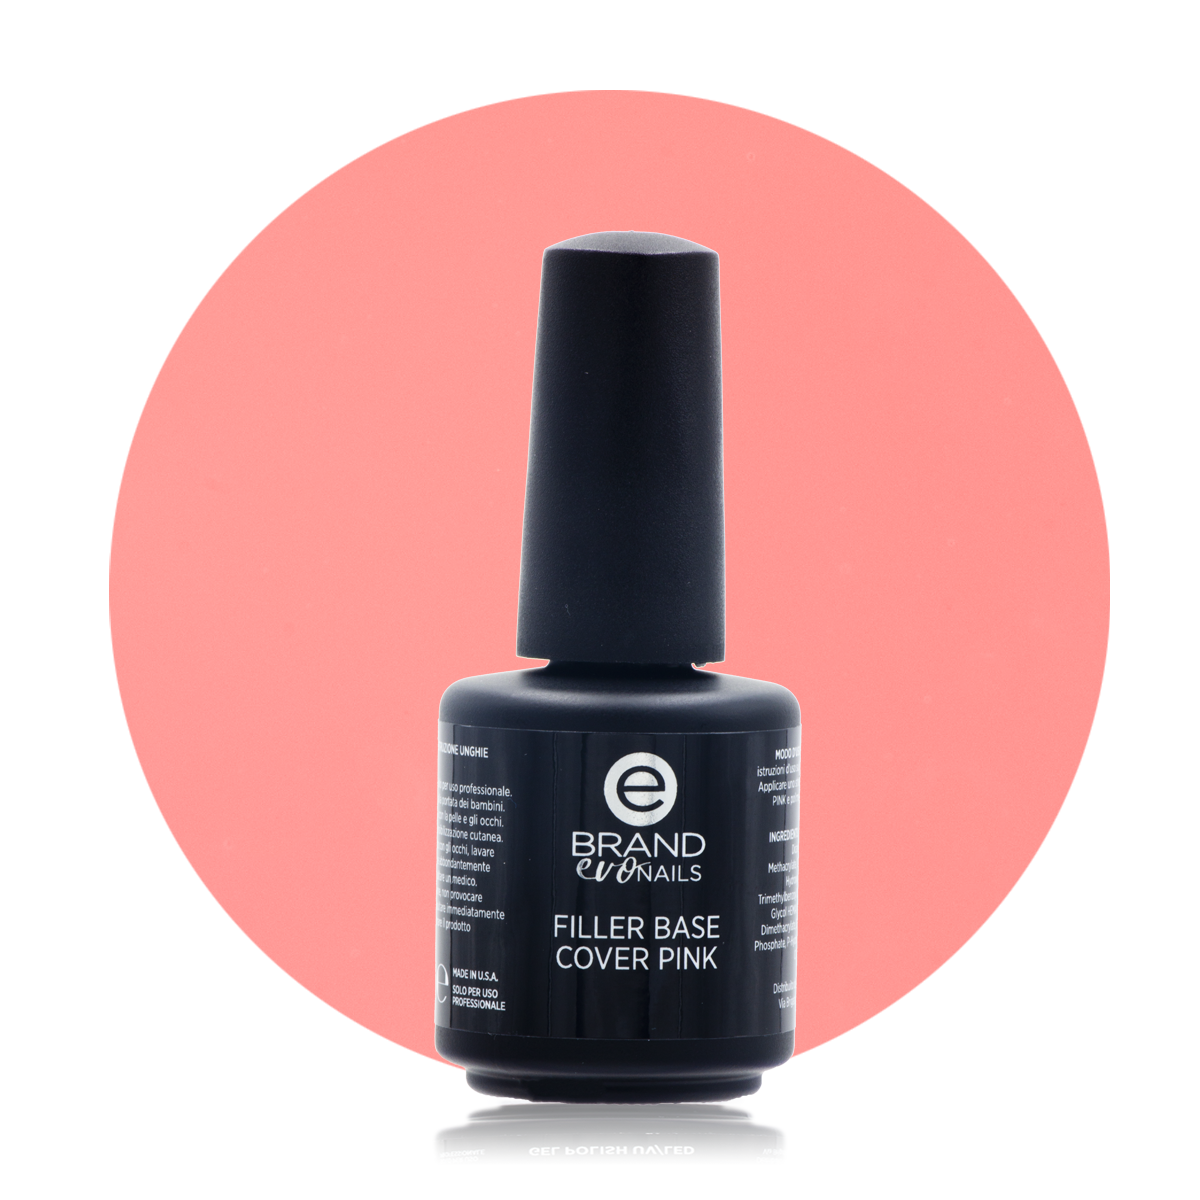 Filler Base Cover Pink, 15 ml, Evo Nails